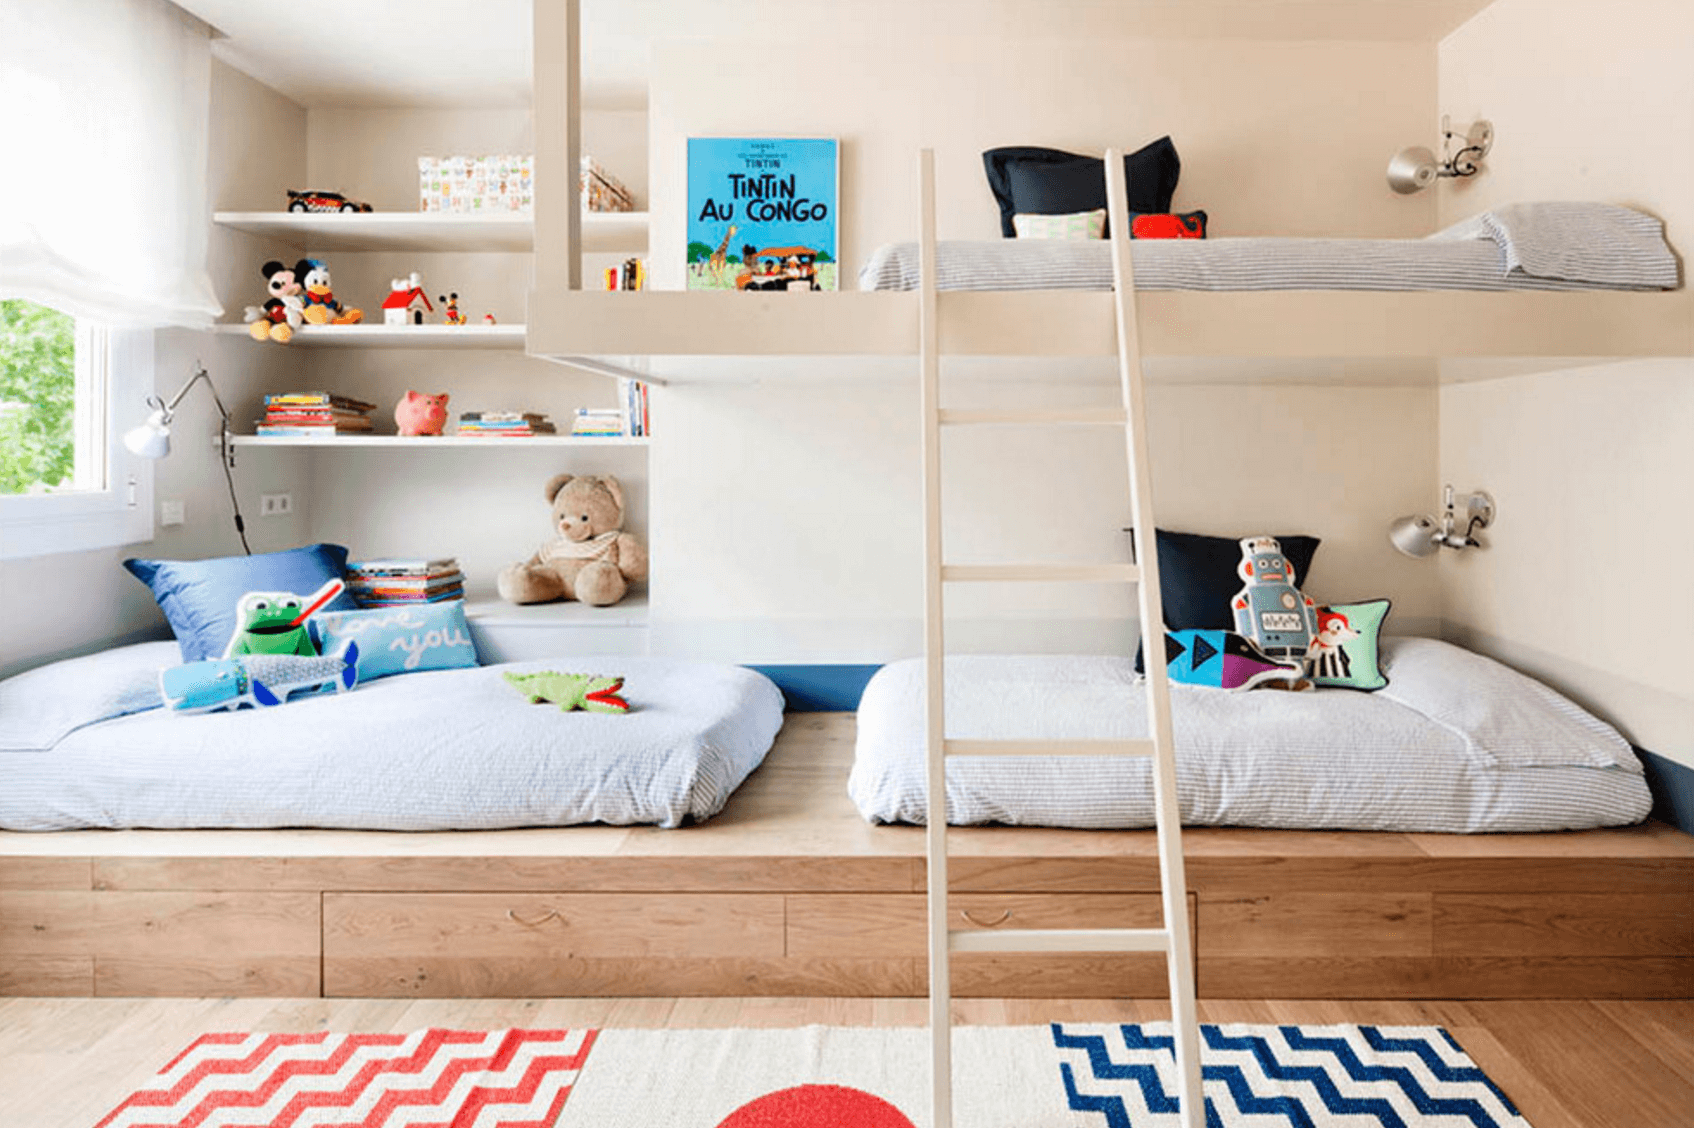 creative shared bedroom ideas for a modern kids room freshome com rh freshome com